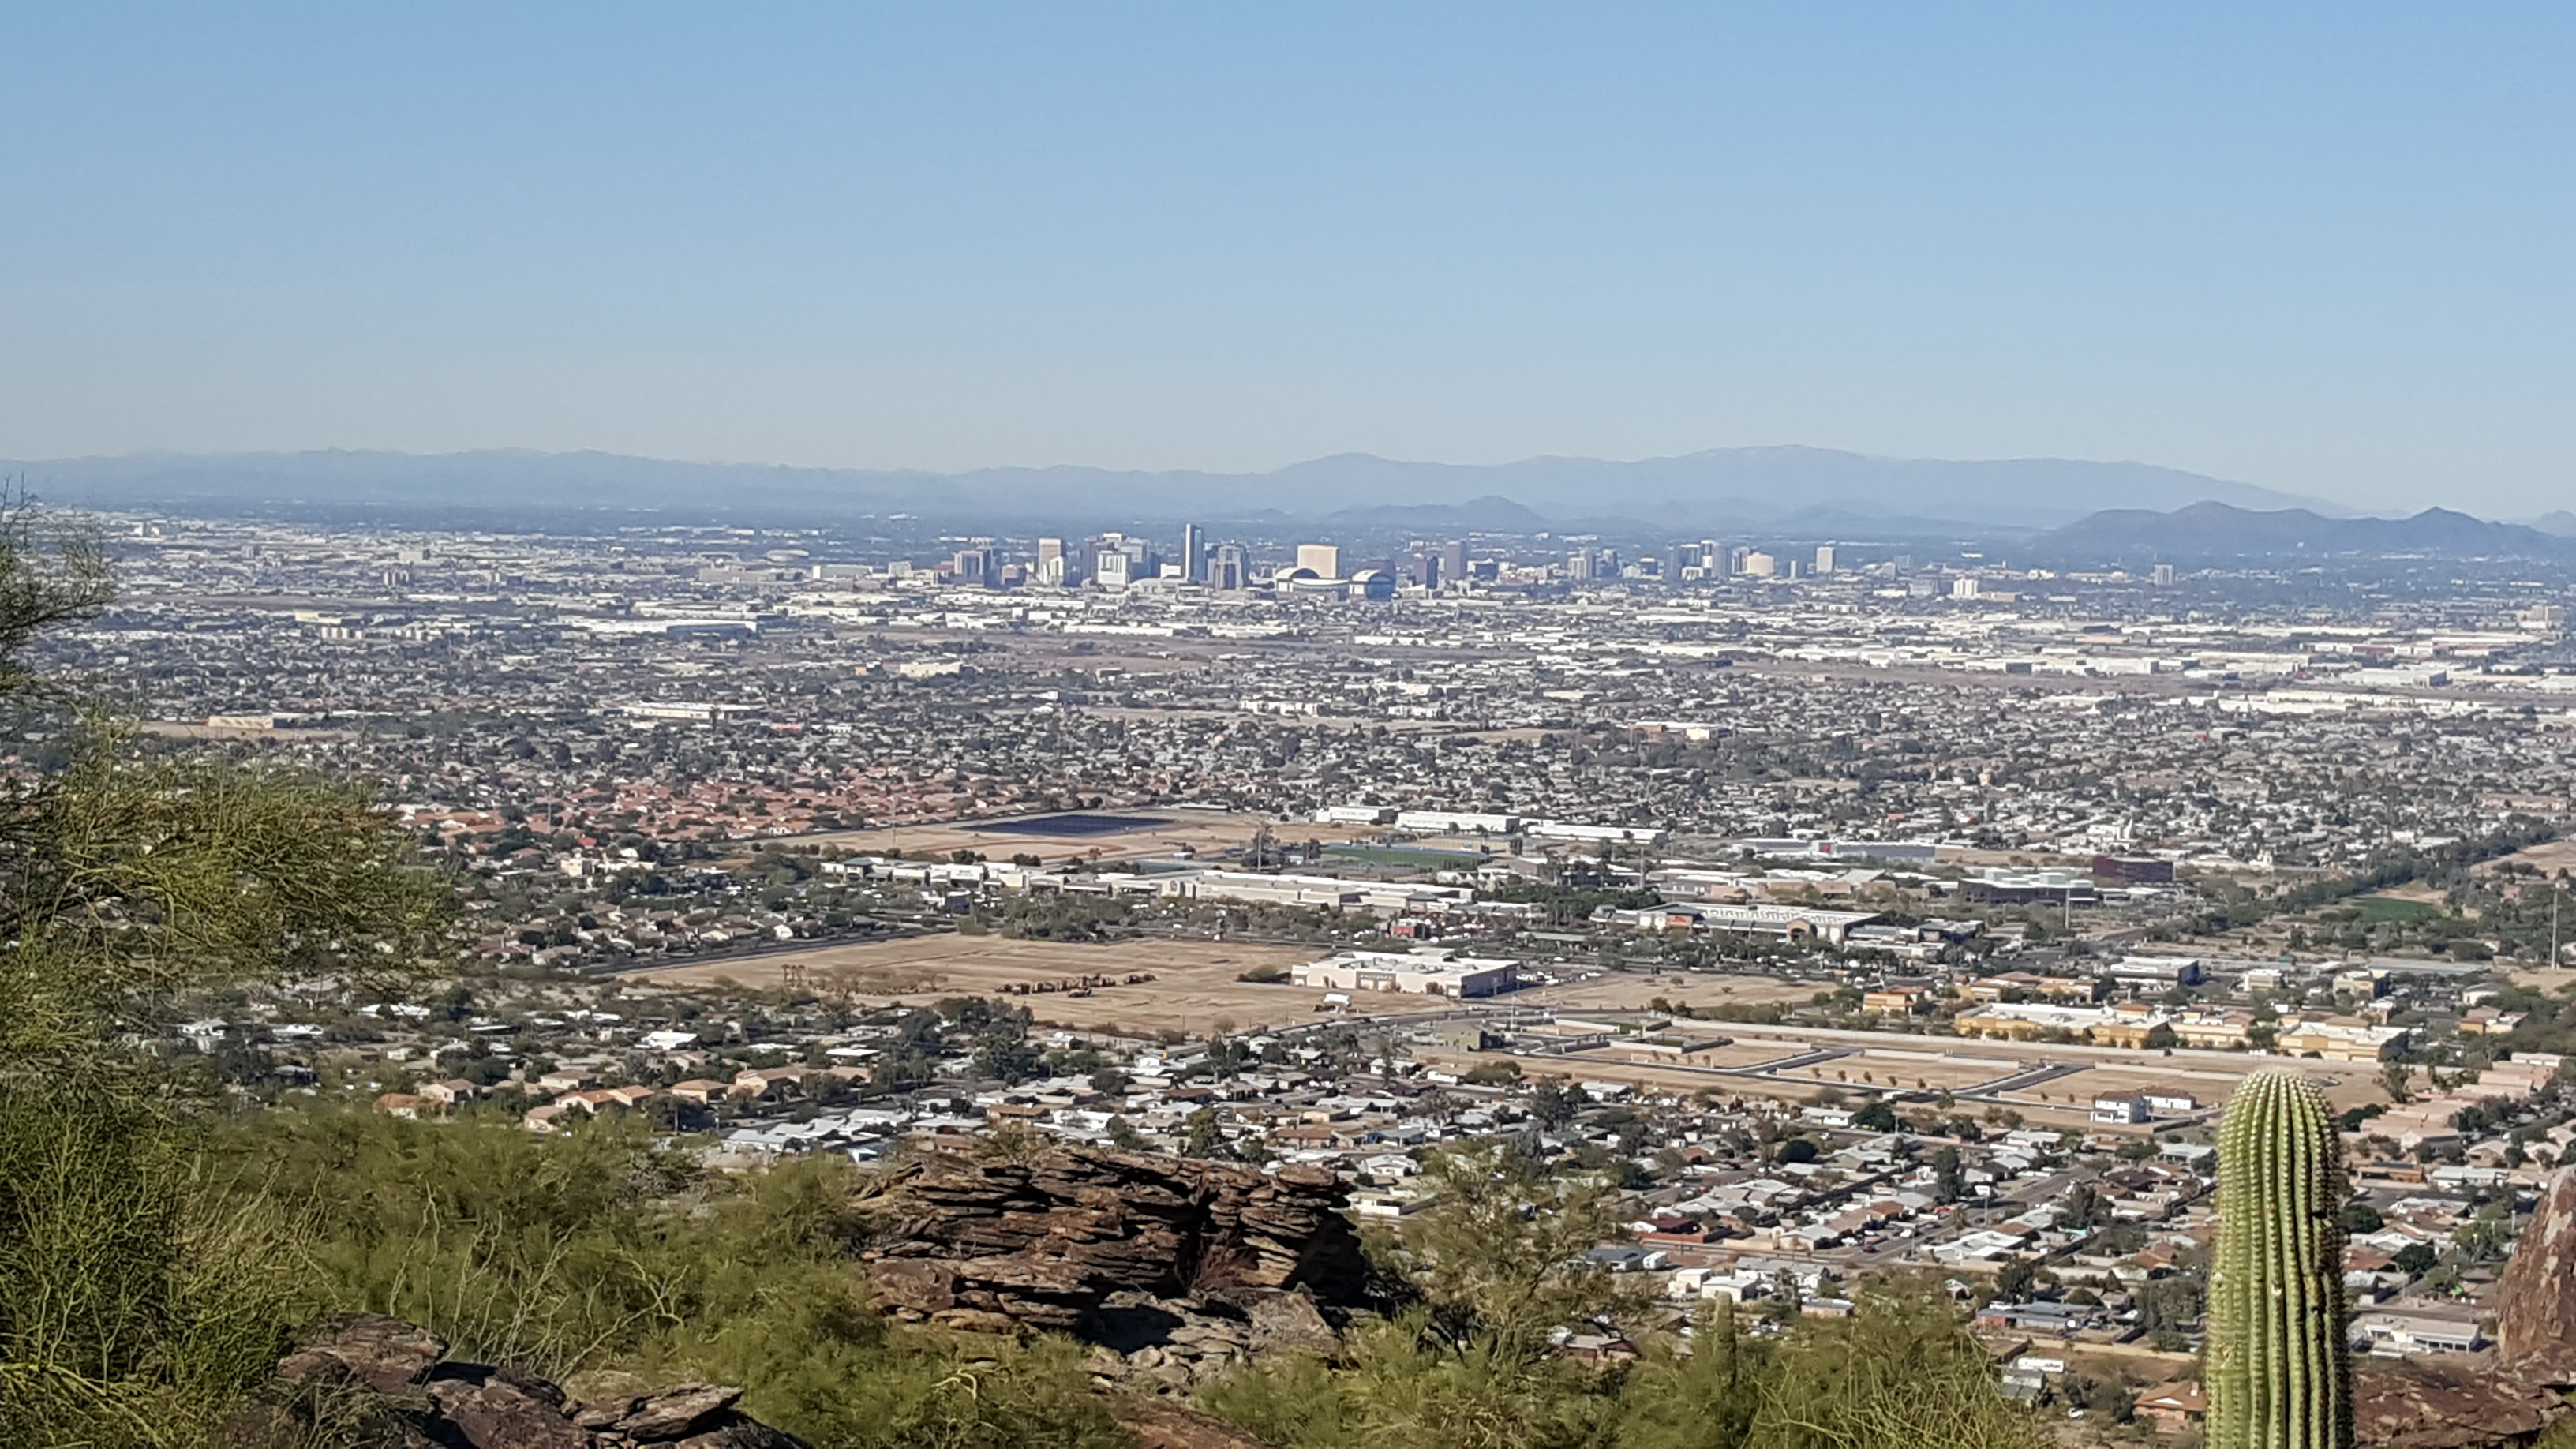 Phoenix Divorce Attorneys, View of the city of Phoenix, Arizona from South Mountain.